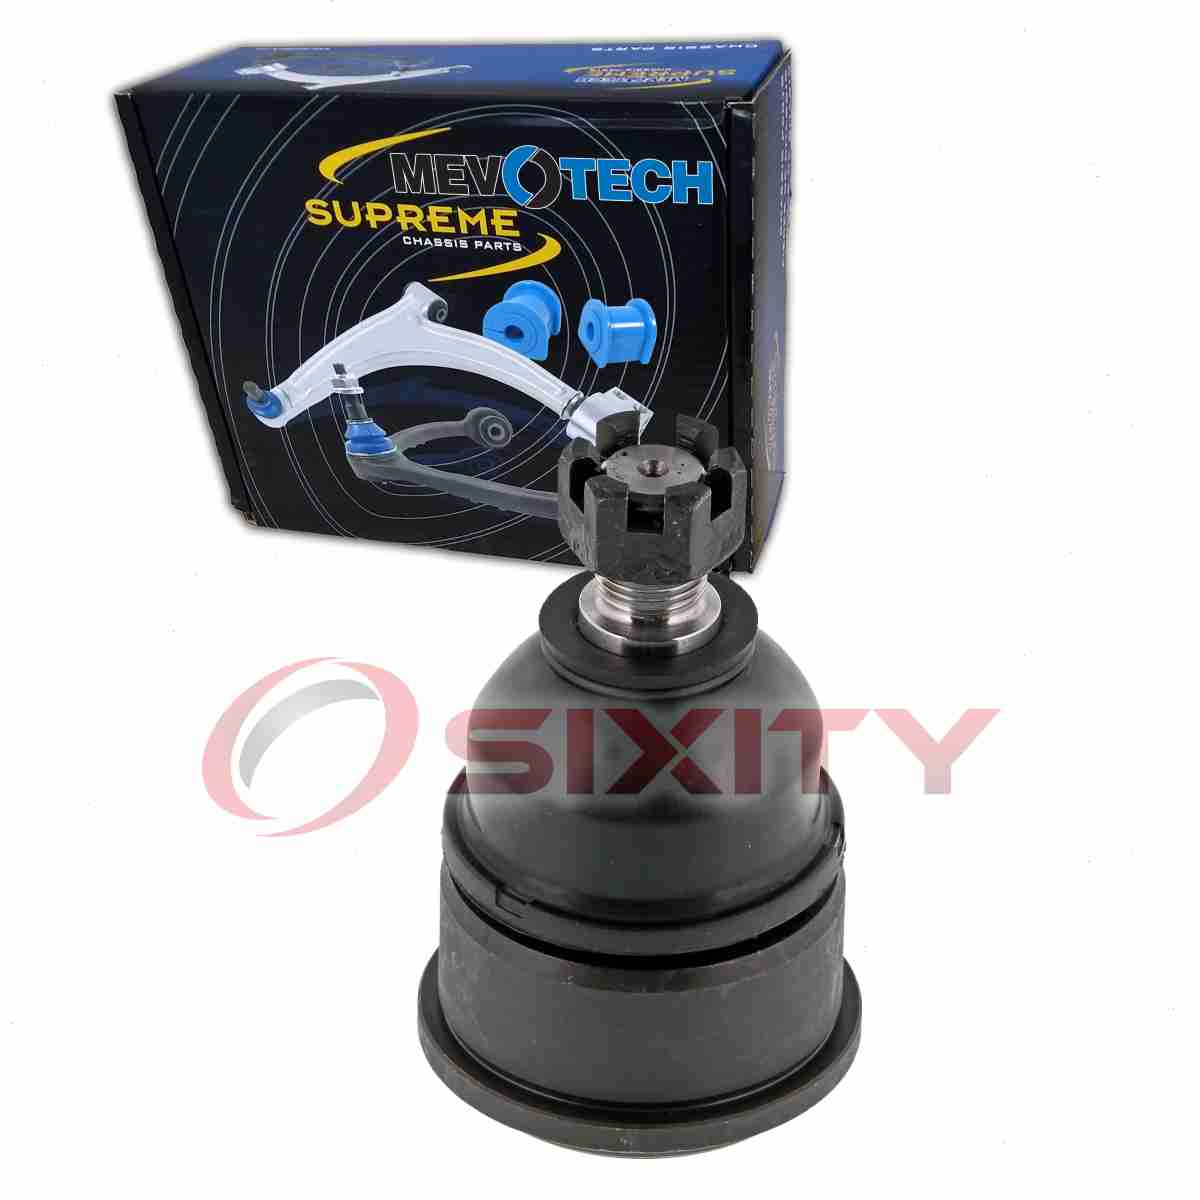 Mevotech Front Lower Suspension Ball Joint for 1967-1970 Chevrolet C10 bs